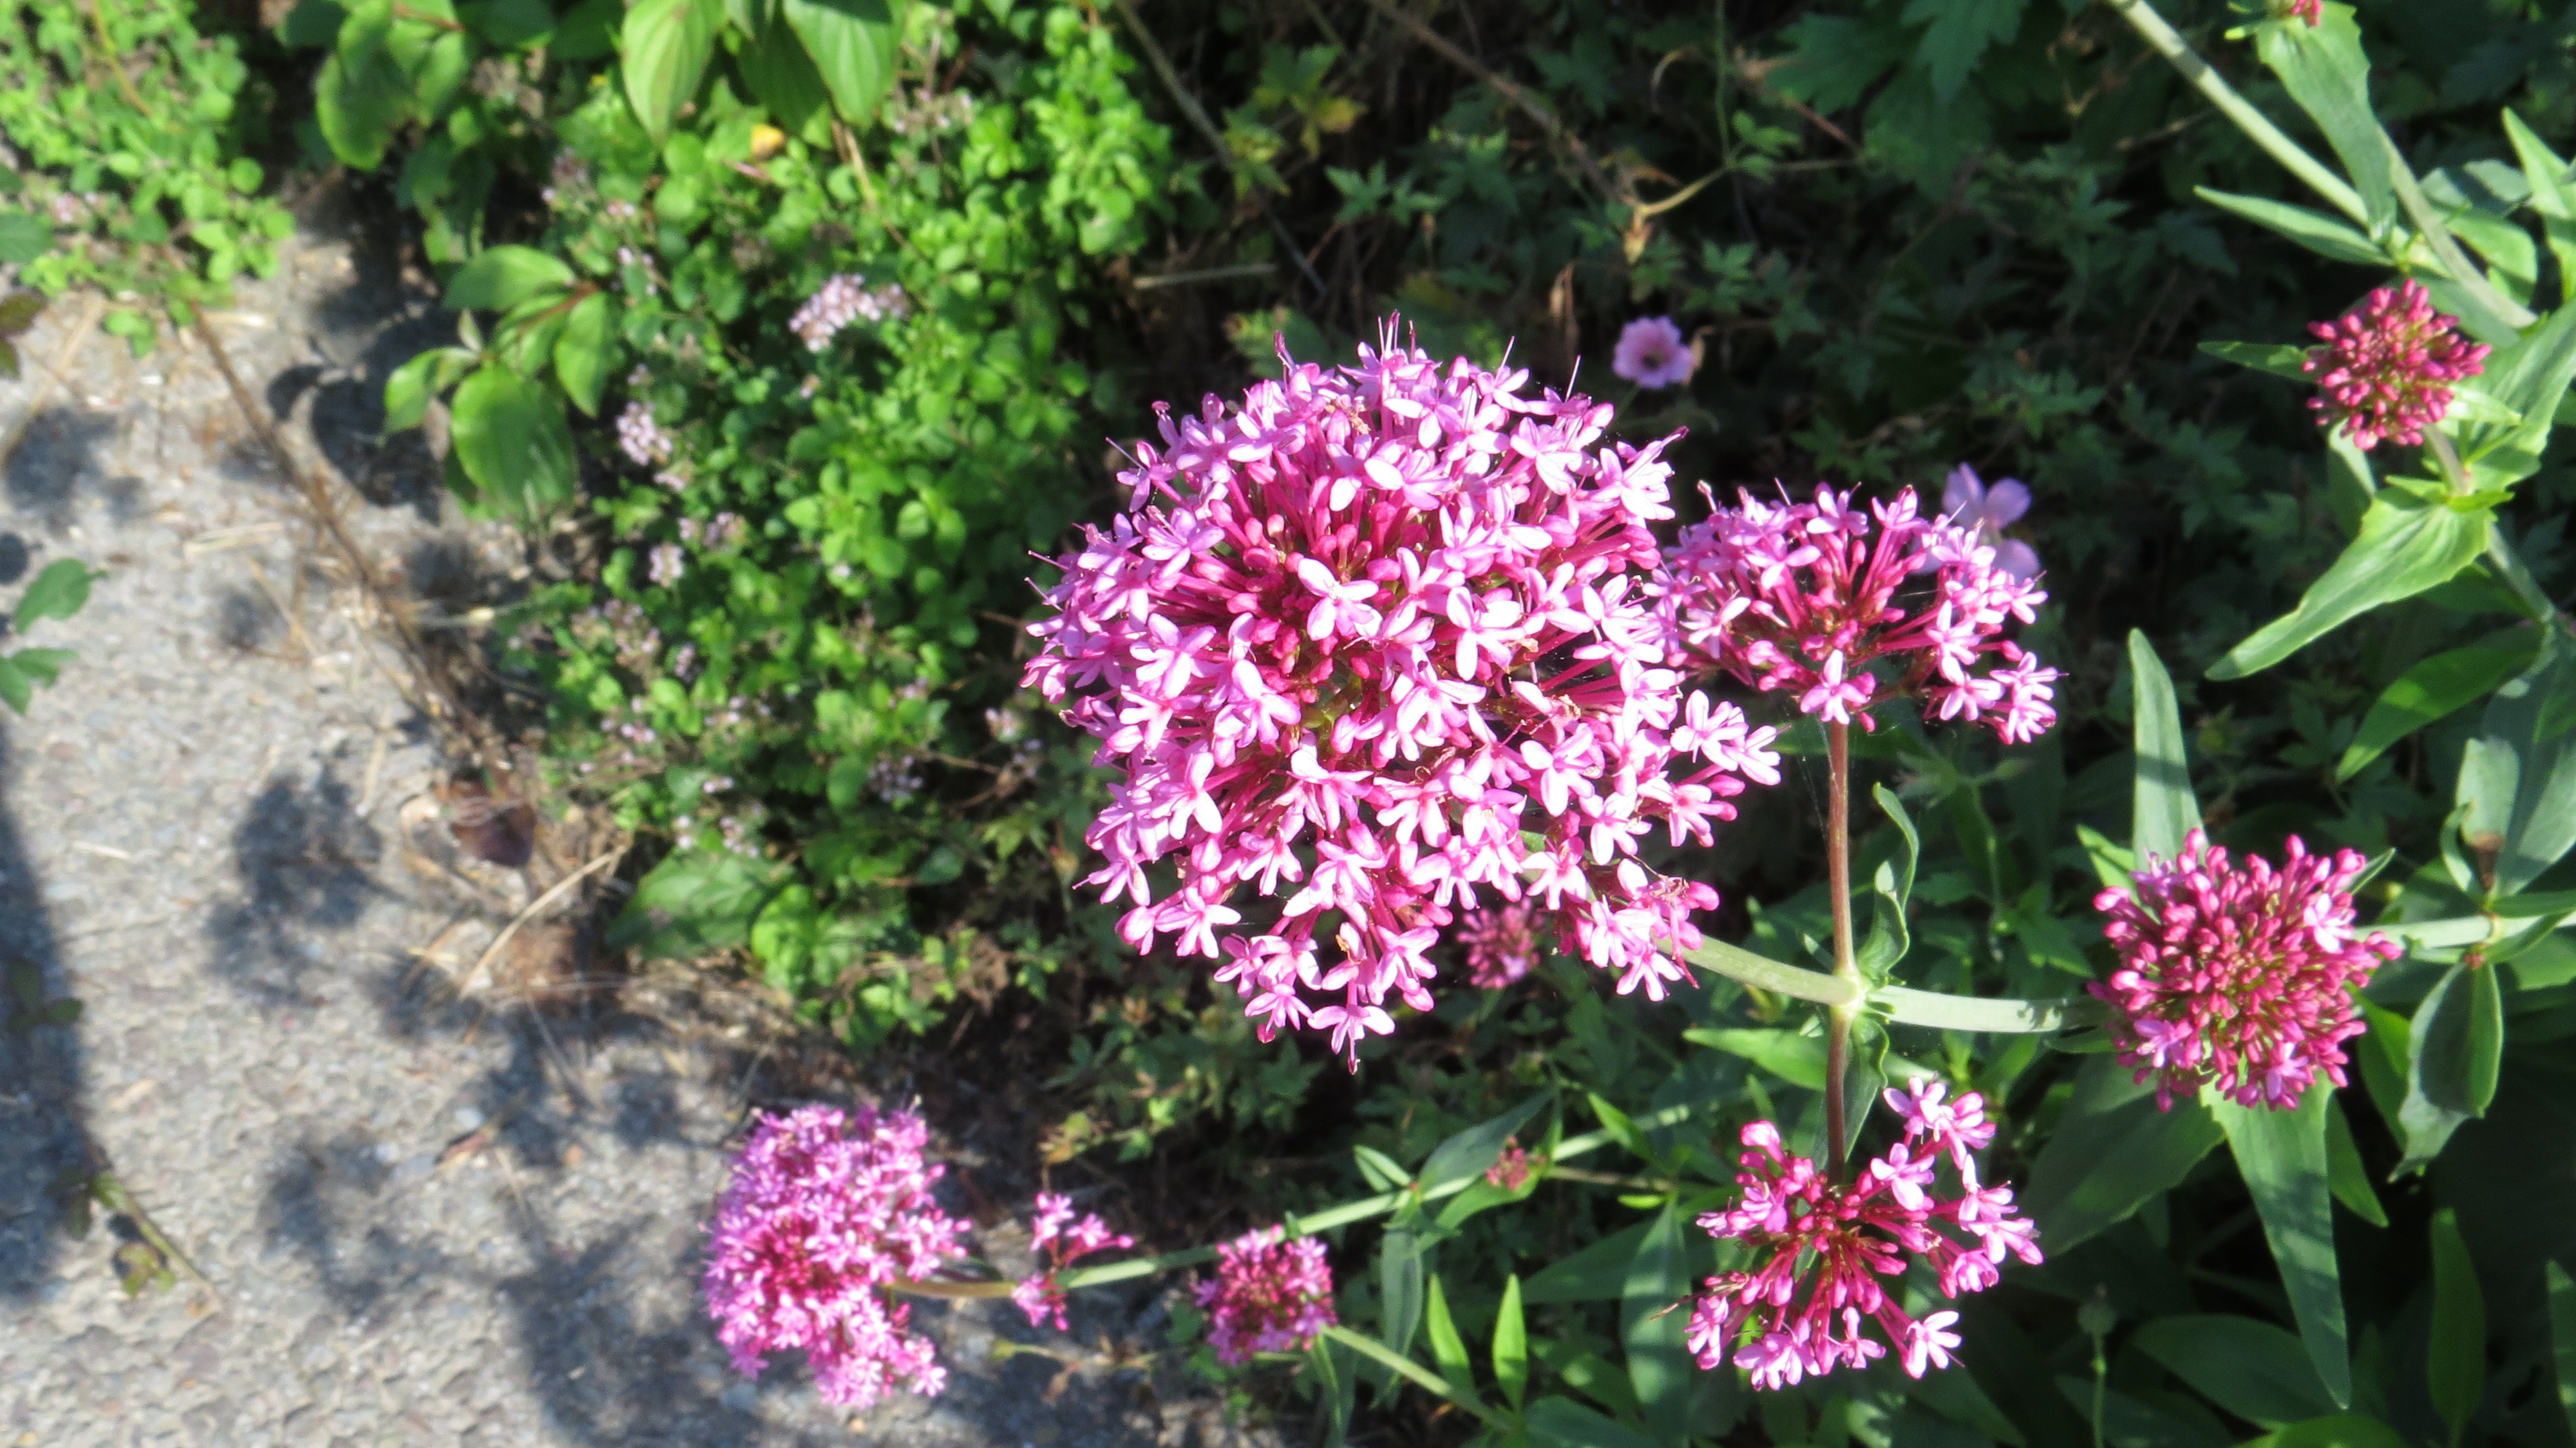 Wednesday weed red valerian bug woman adventures in london close up you can see that the head is made up of hundreds of tiny 5 petalled flowers as the year goes on these are replaced by the fluffy seeds which mightylinksfo